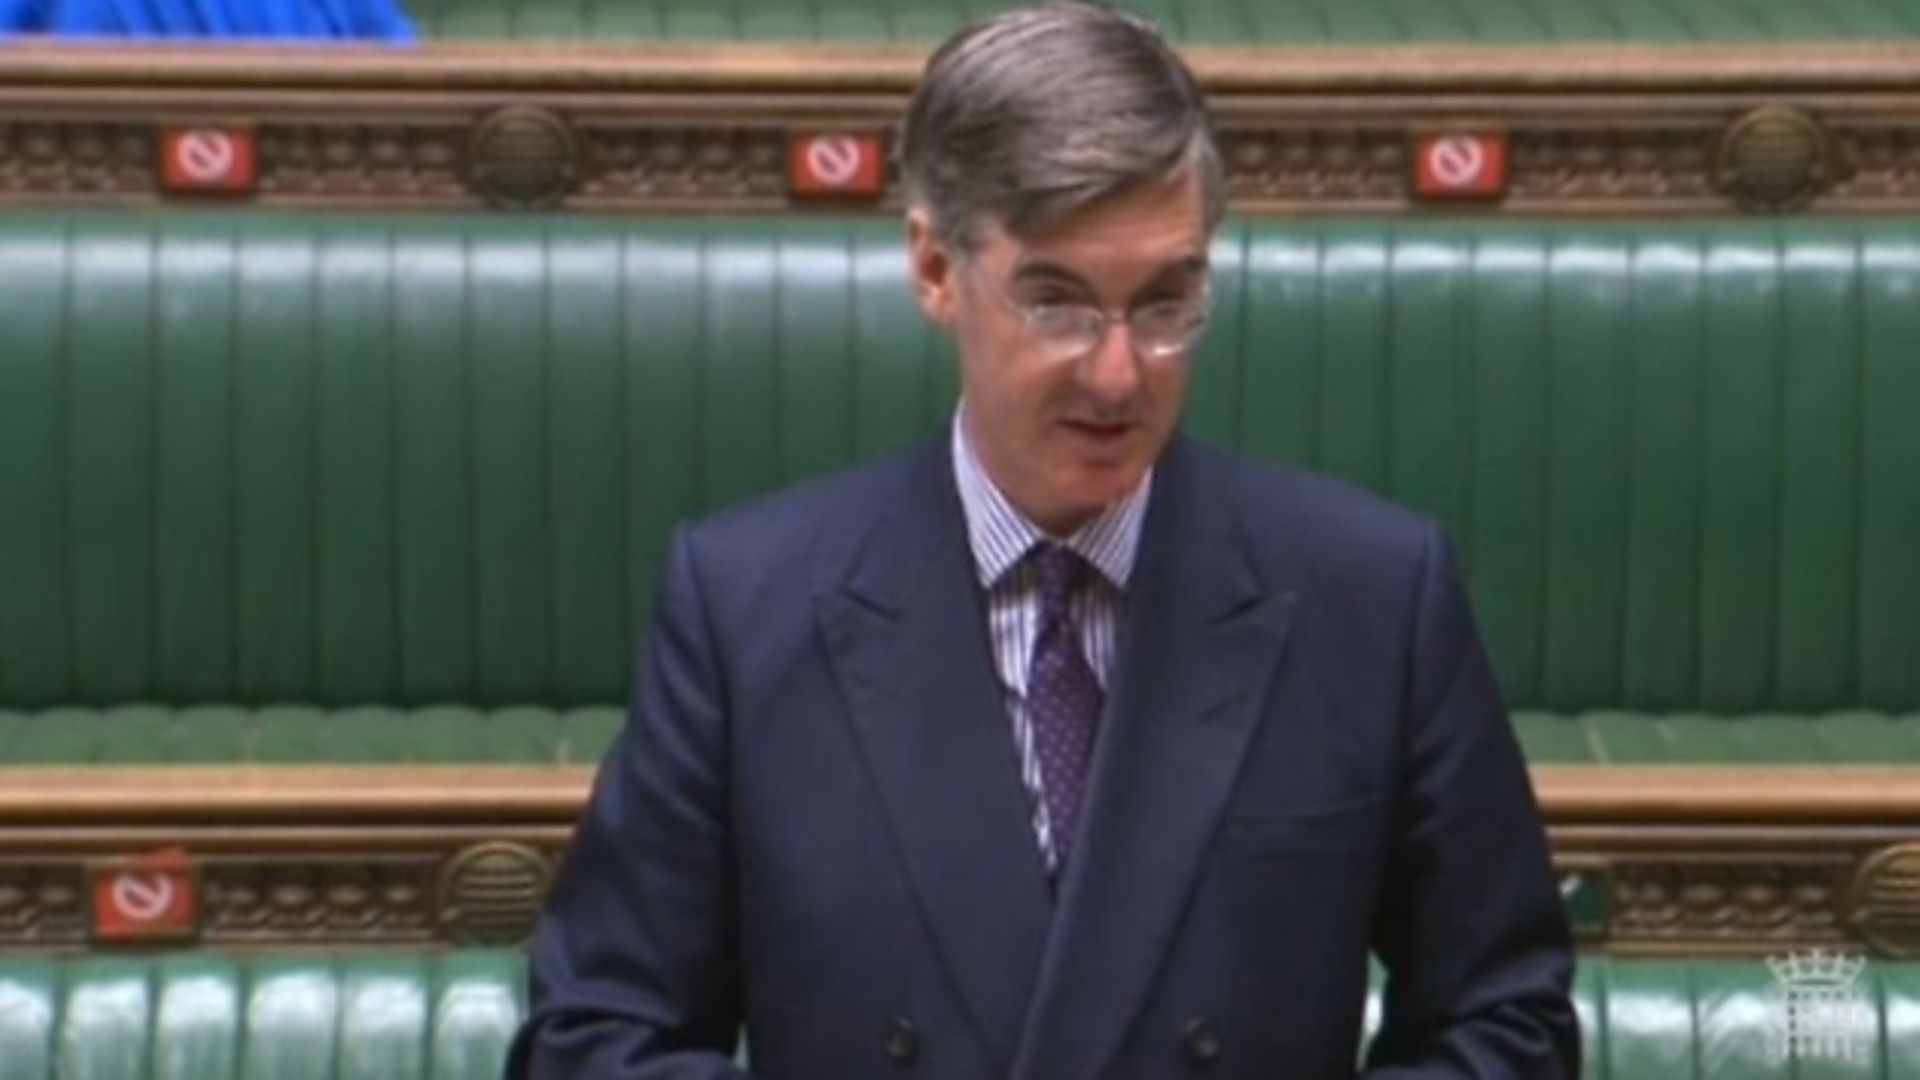 Jacob Rees-Mogg in the House of Commons - Credit: Parliamentlive.tv